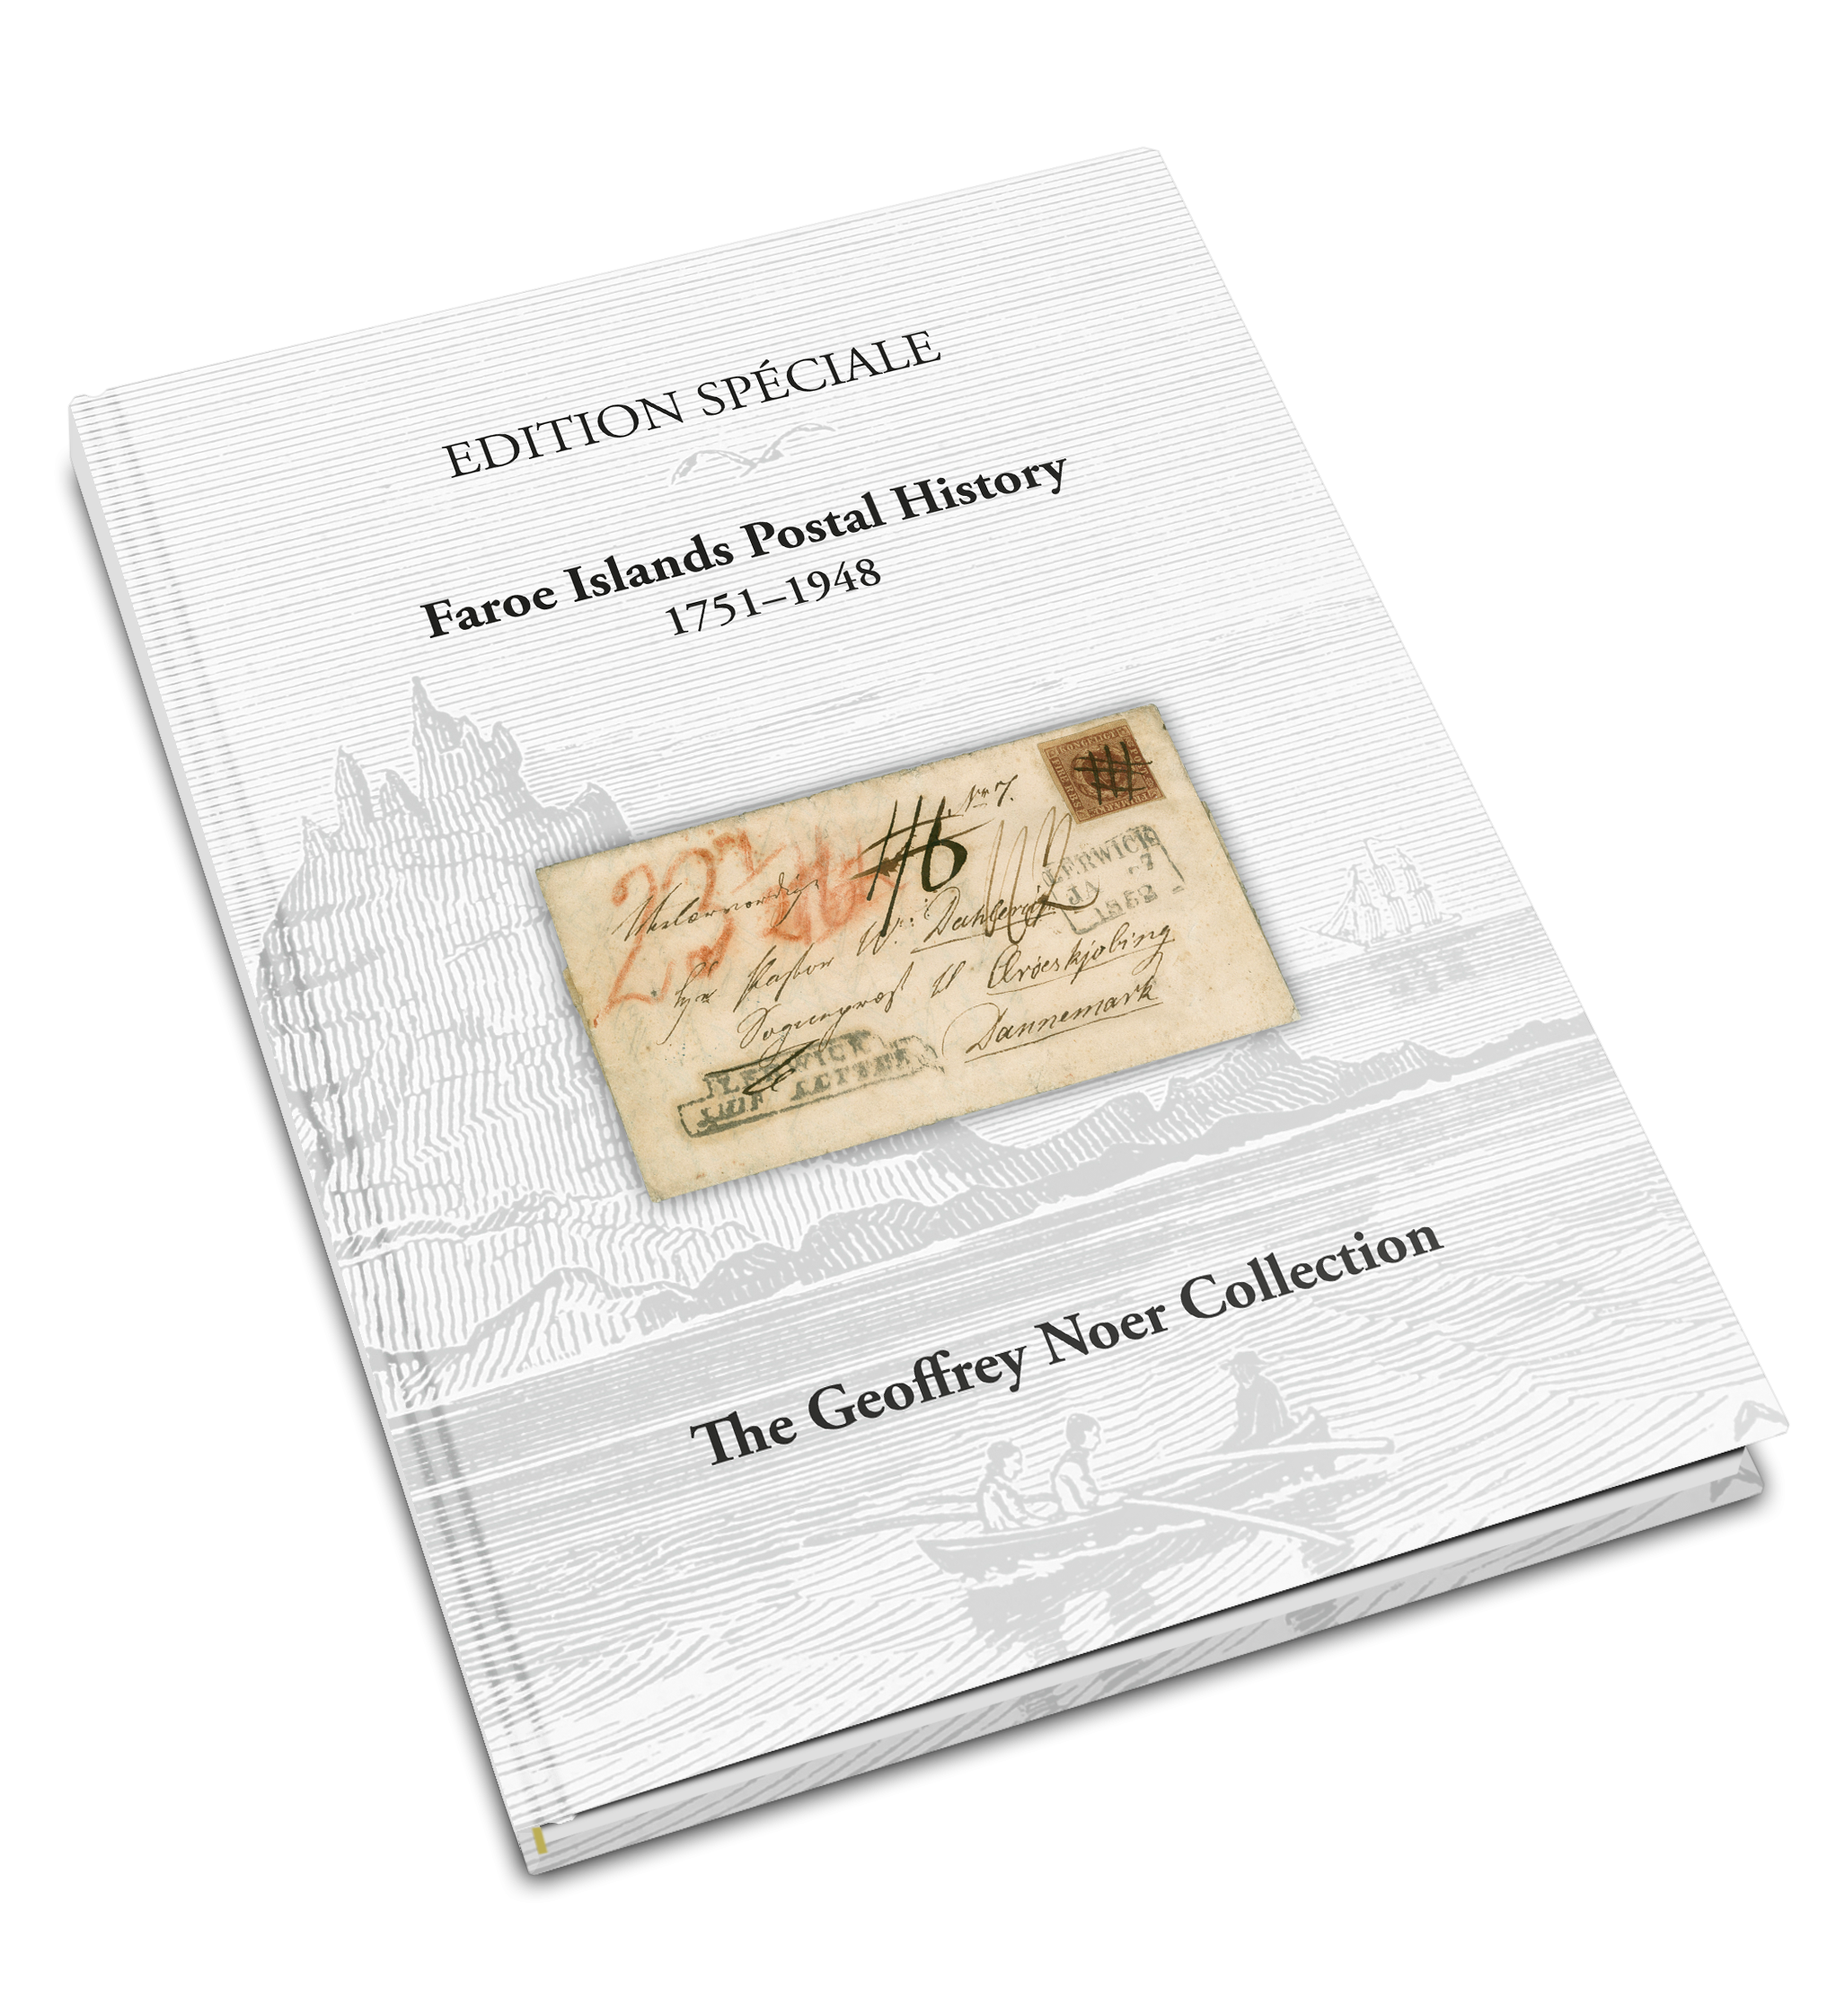 EDITION SPÉCIALE: Faroe Islands - Postal History 1751-1948 • The Geoffrey Noer Collection